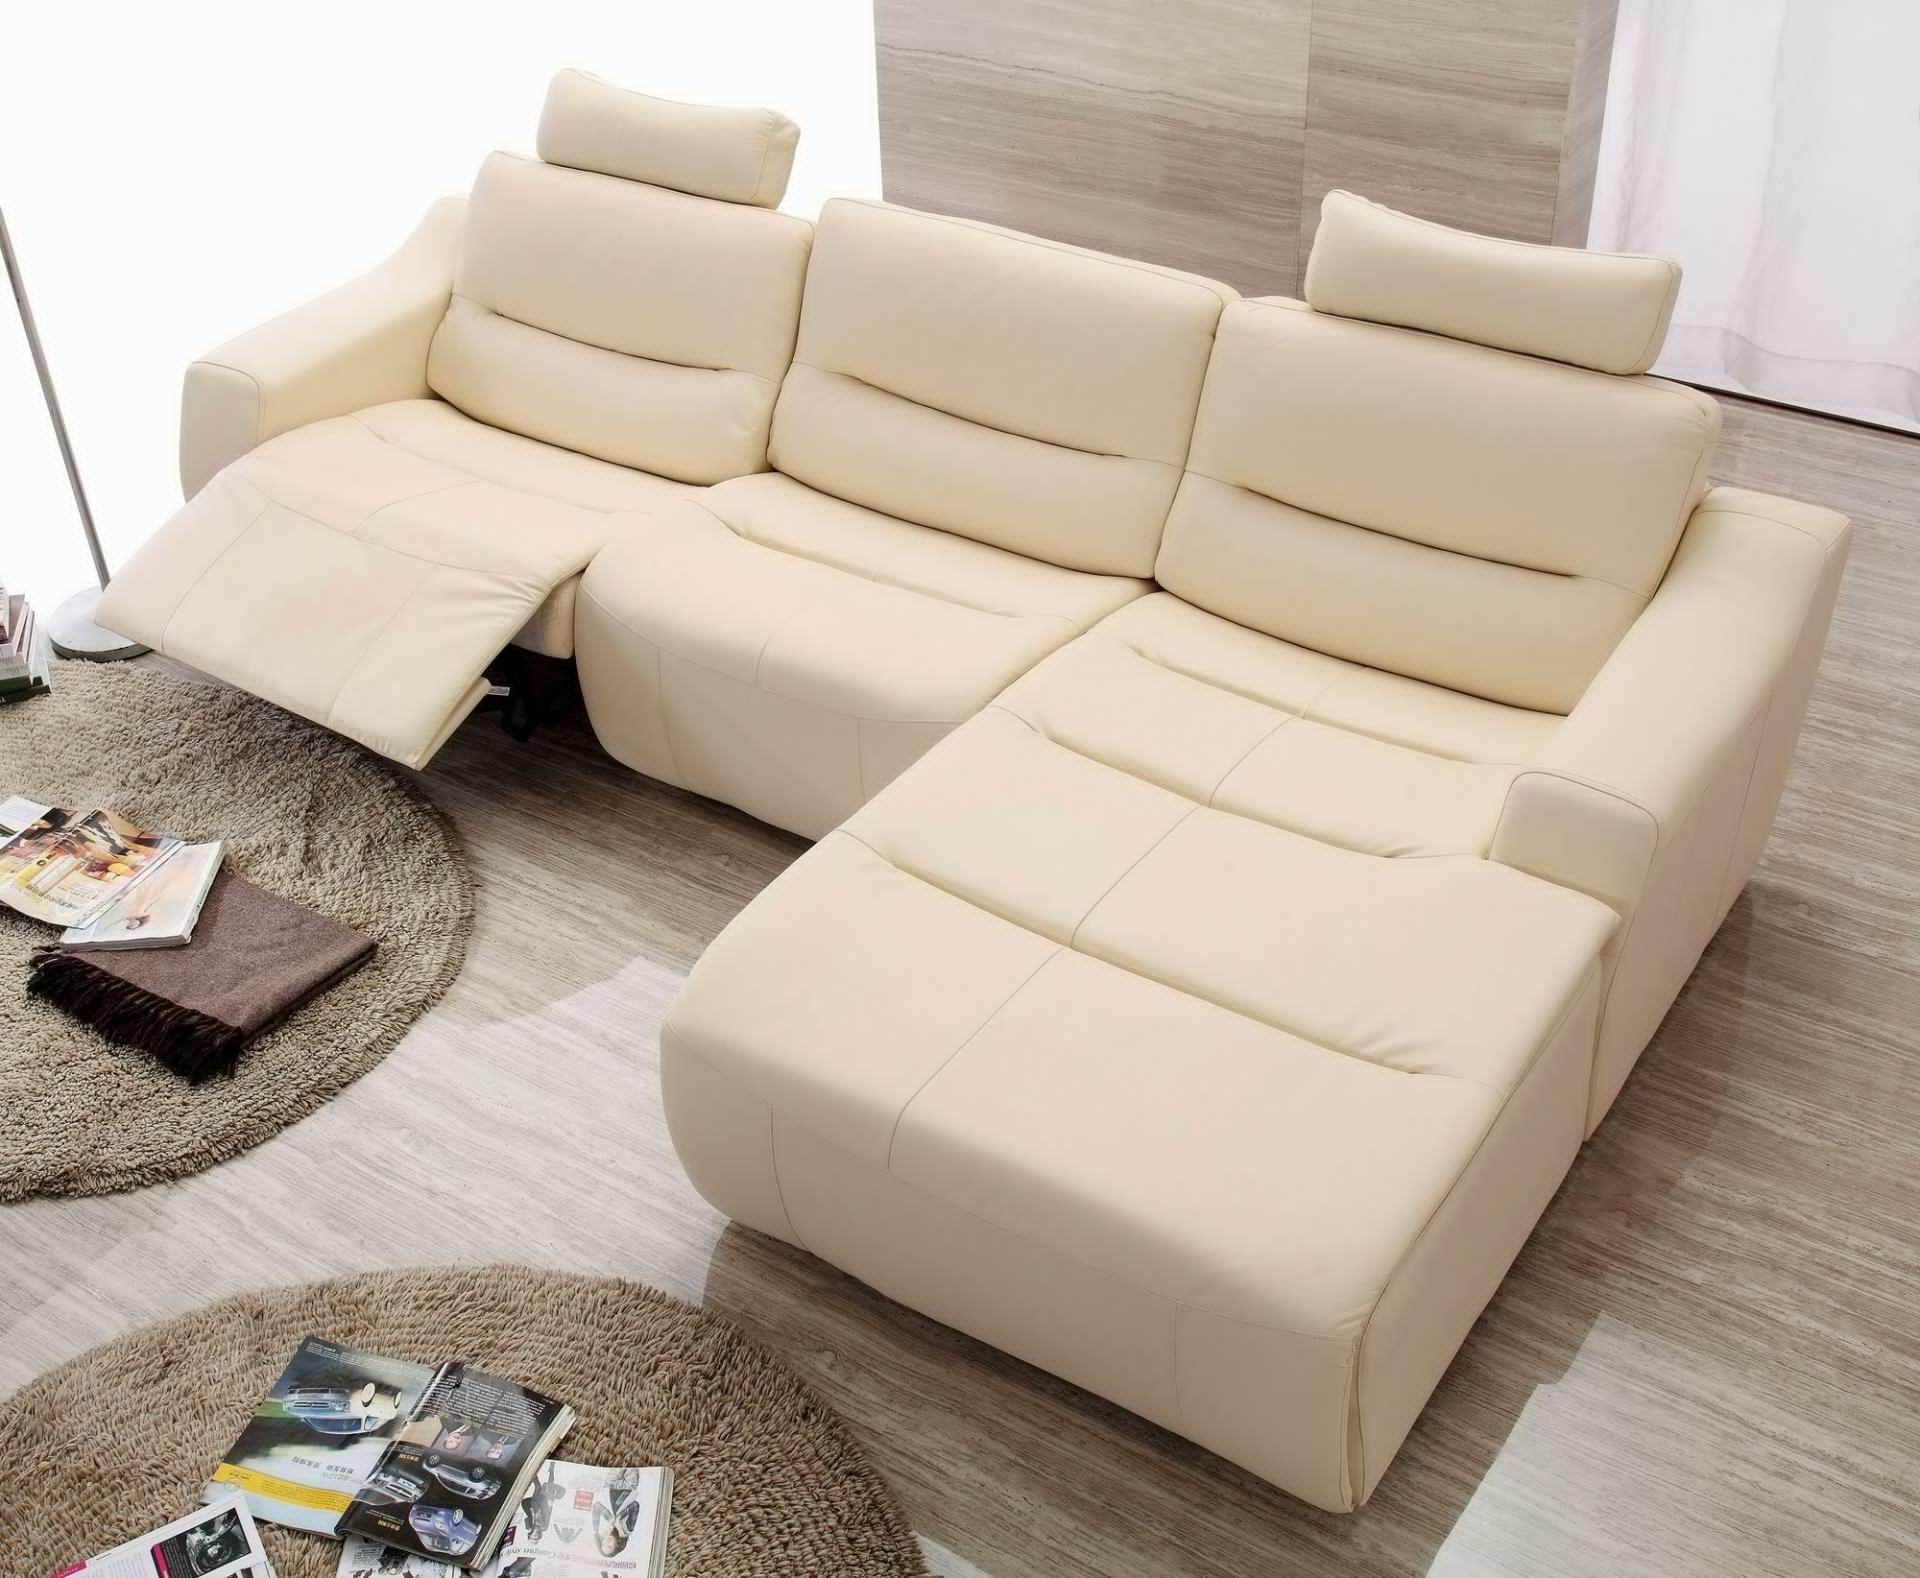 Sectional Sofa Design: Reclining Sectional Sofas For Small Spaces With Sectional Sofas With Recliners For Small Spaces (View 5 of 10)